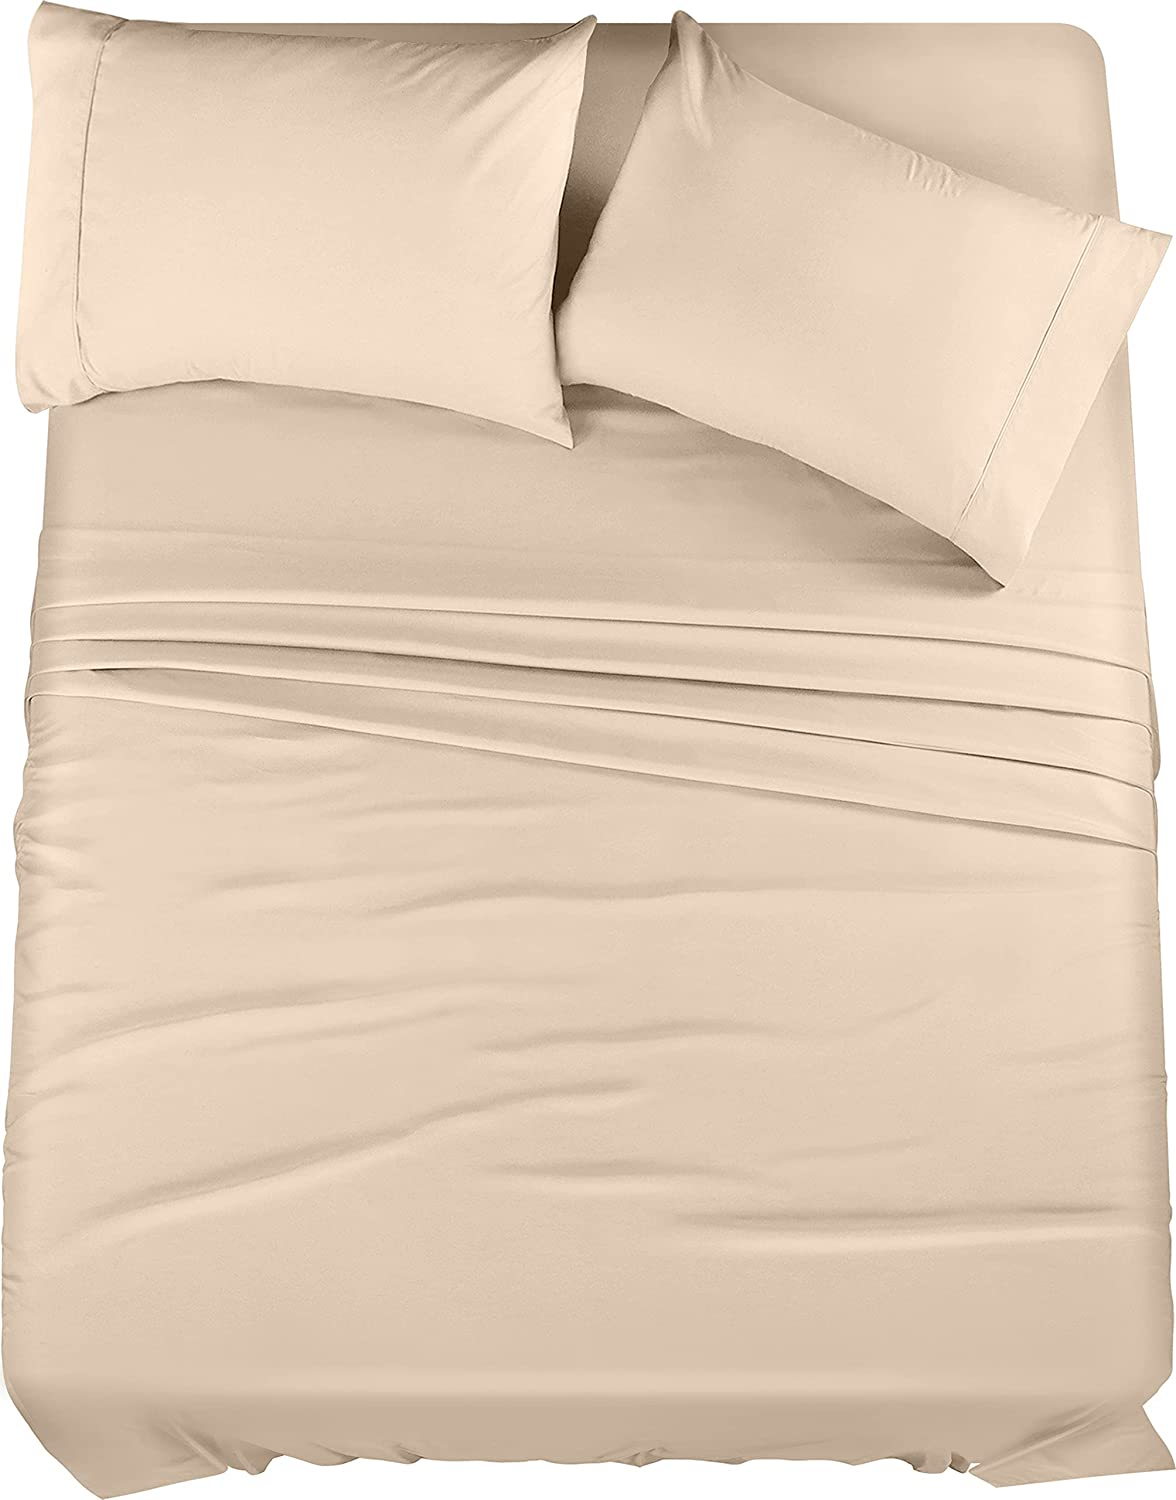 Utopia Bedding Bed Sheet Set - Brushed Microfiber 4 Piece Cal King Bedding - Shrinkage & Fade Resistant - Soft Sheets - Easy Care (Cal King, Beige)